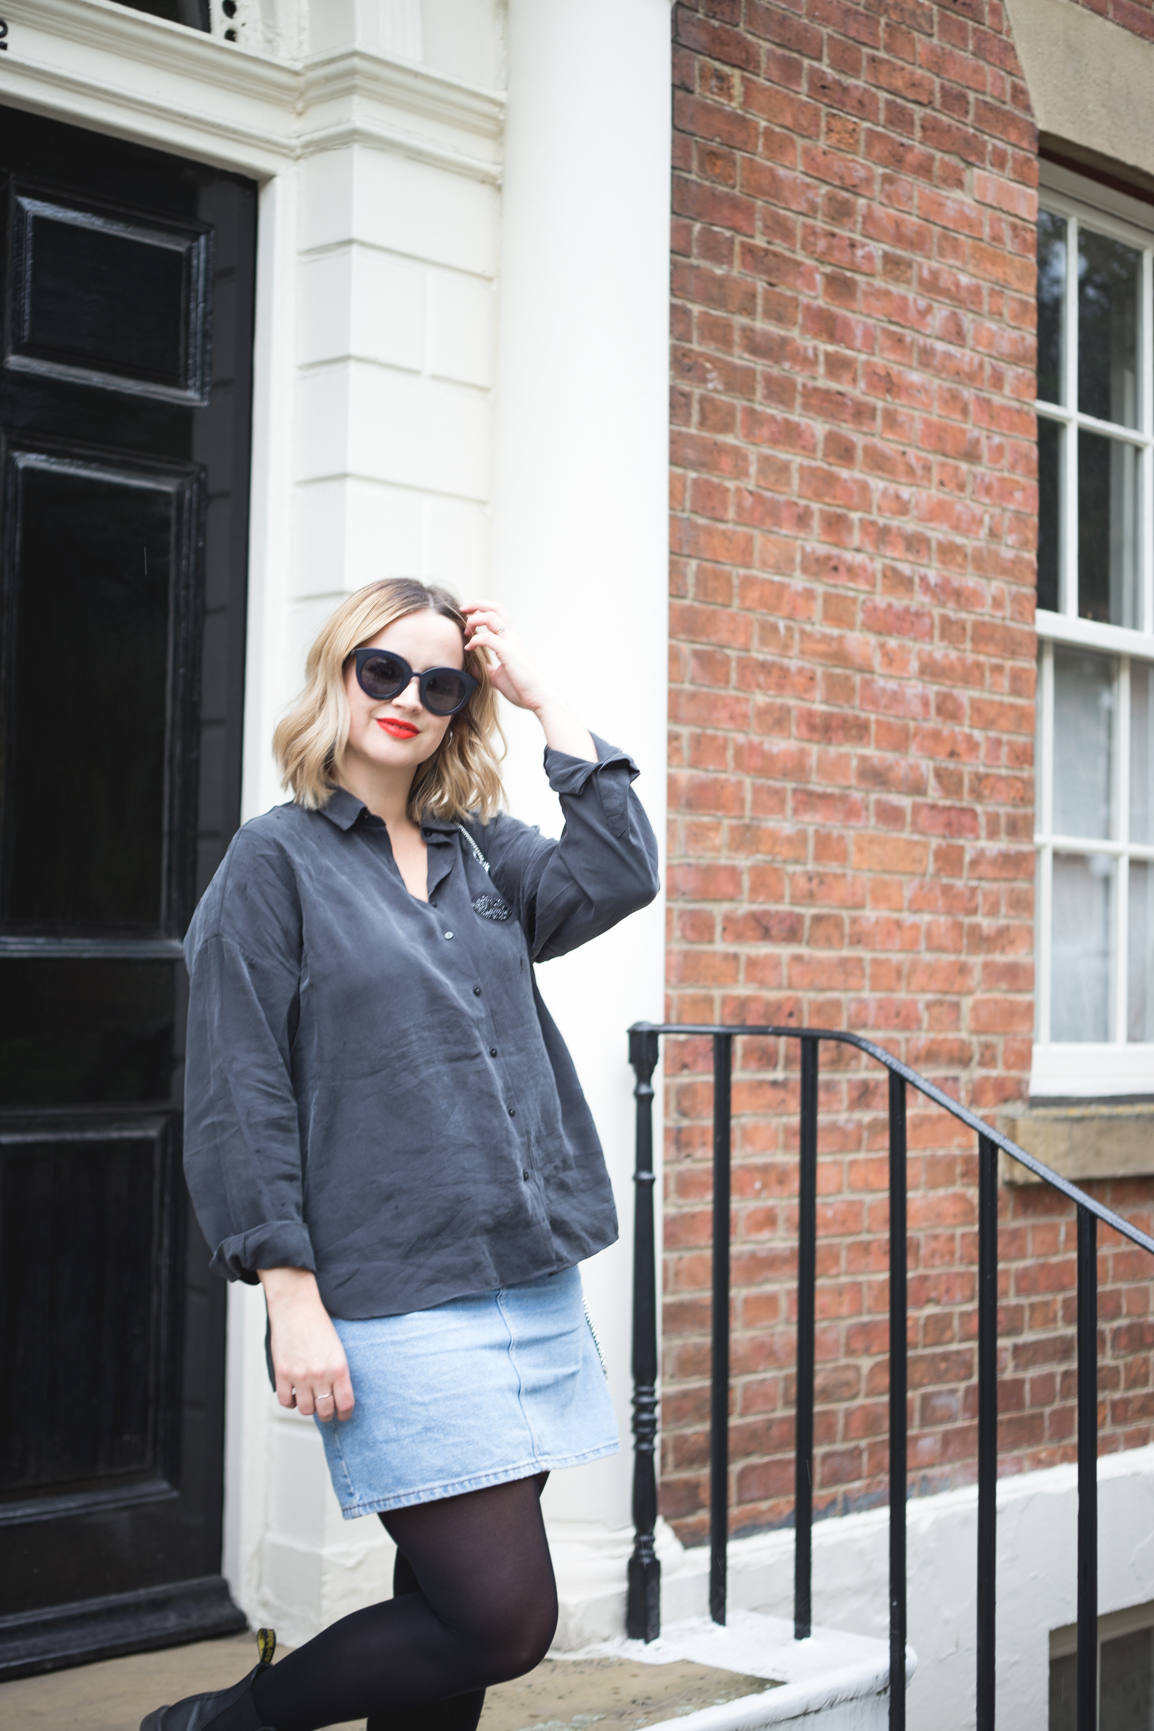 5 things blogging has taught me